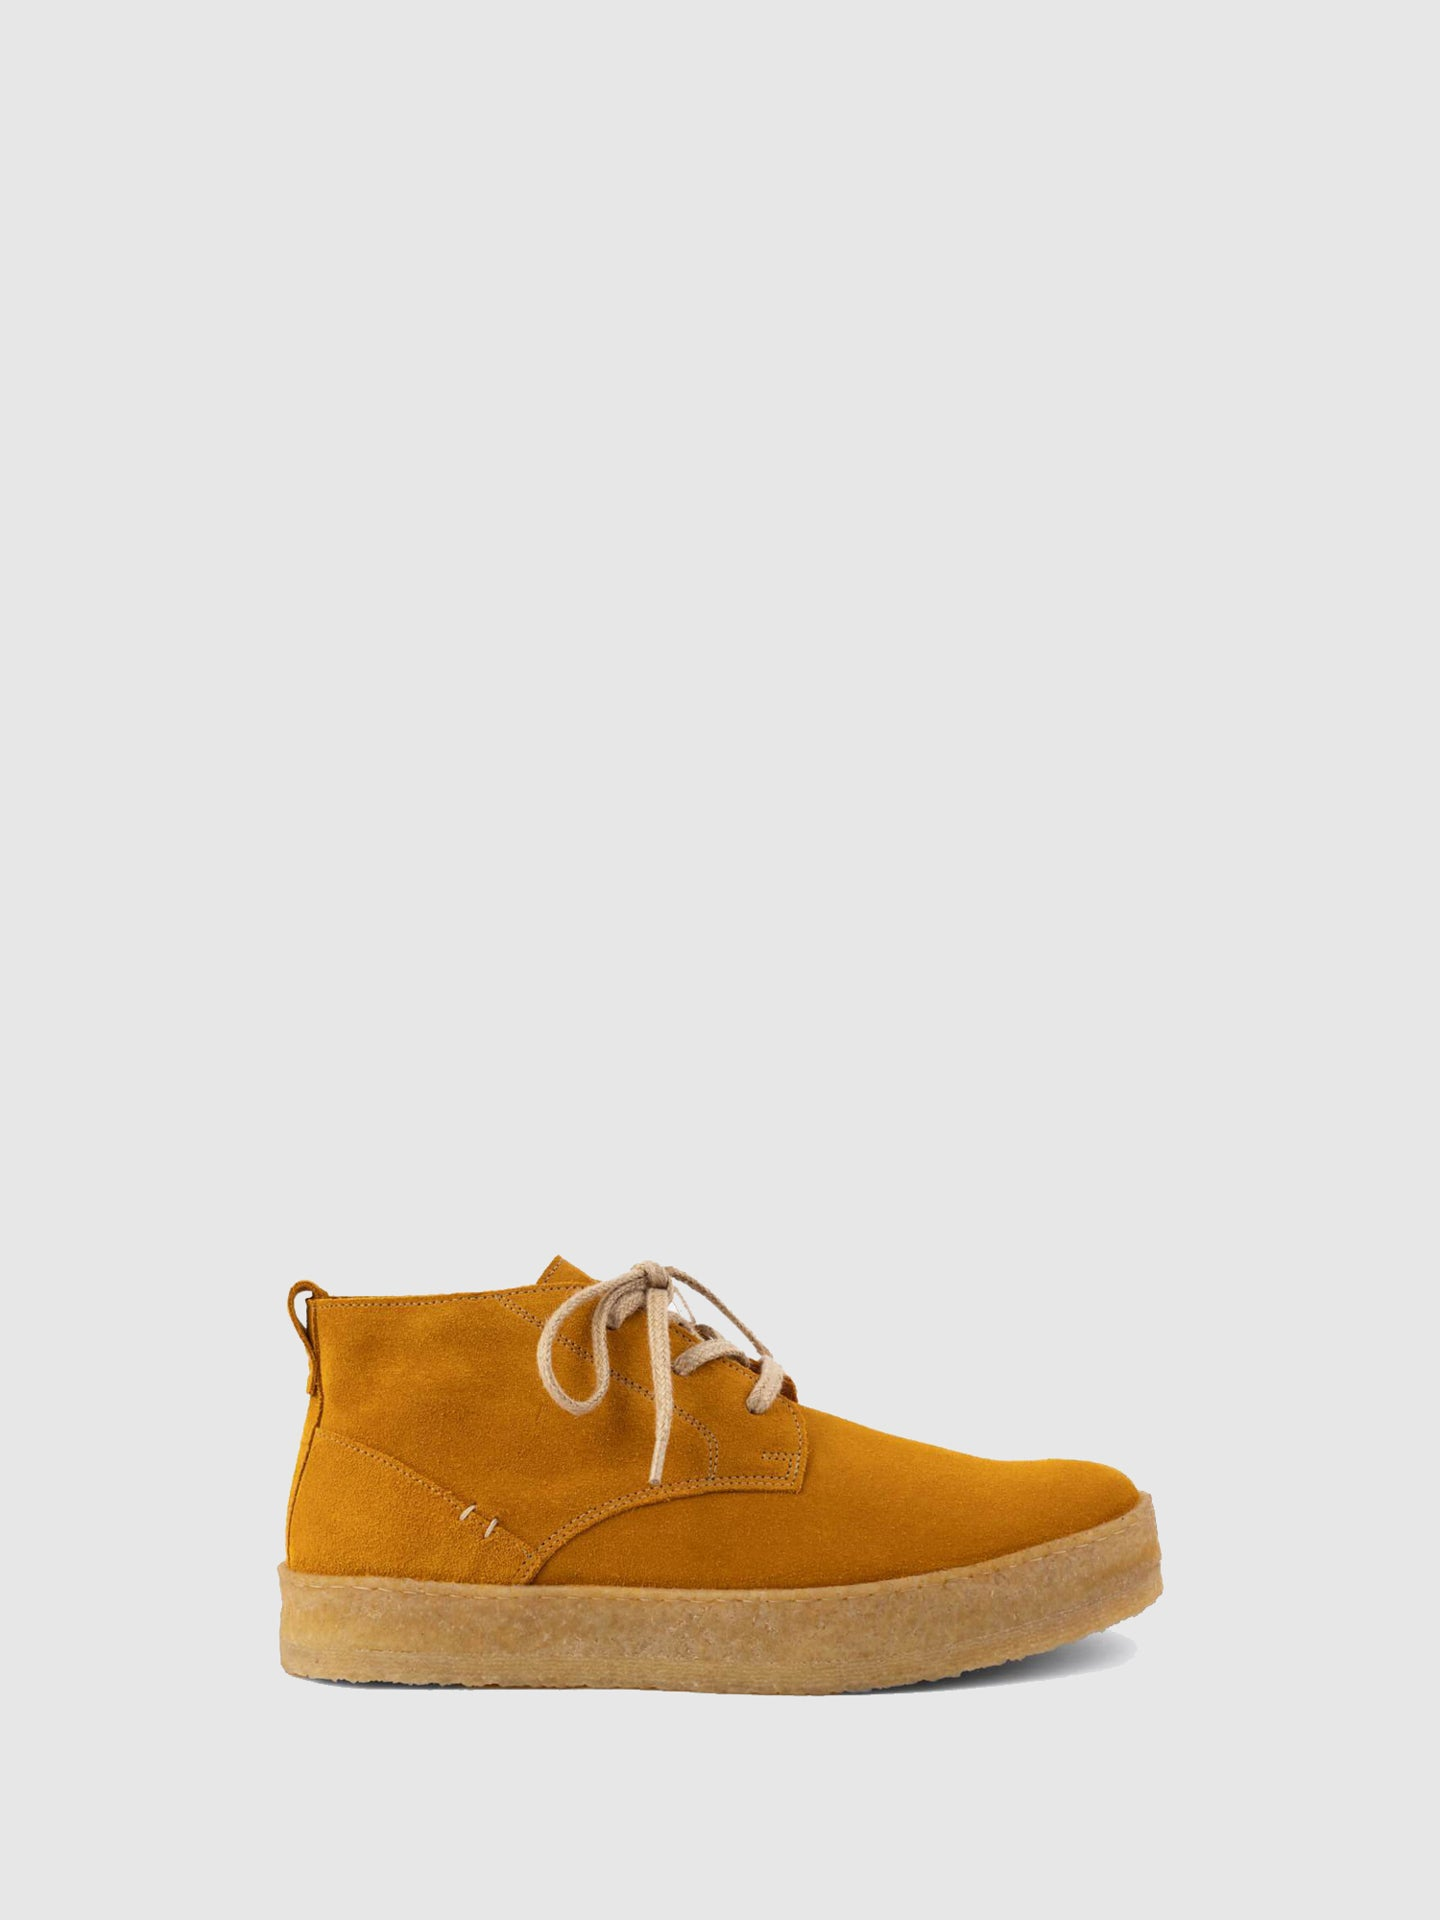 Lusquinos Yellow Lace-up Shoes